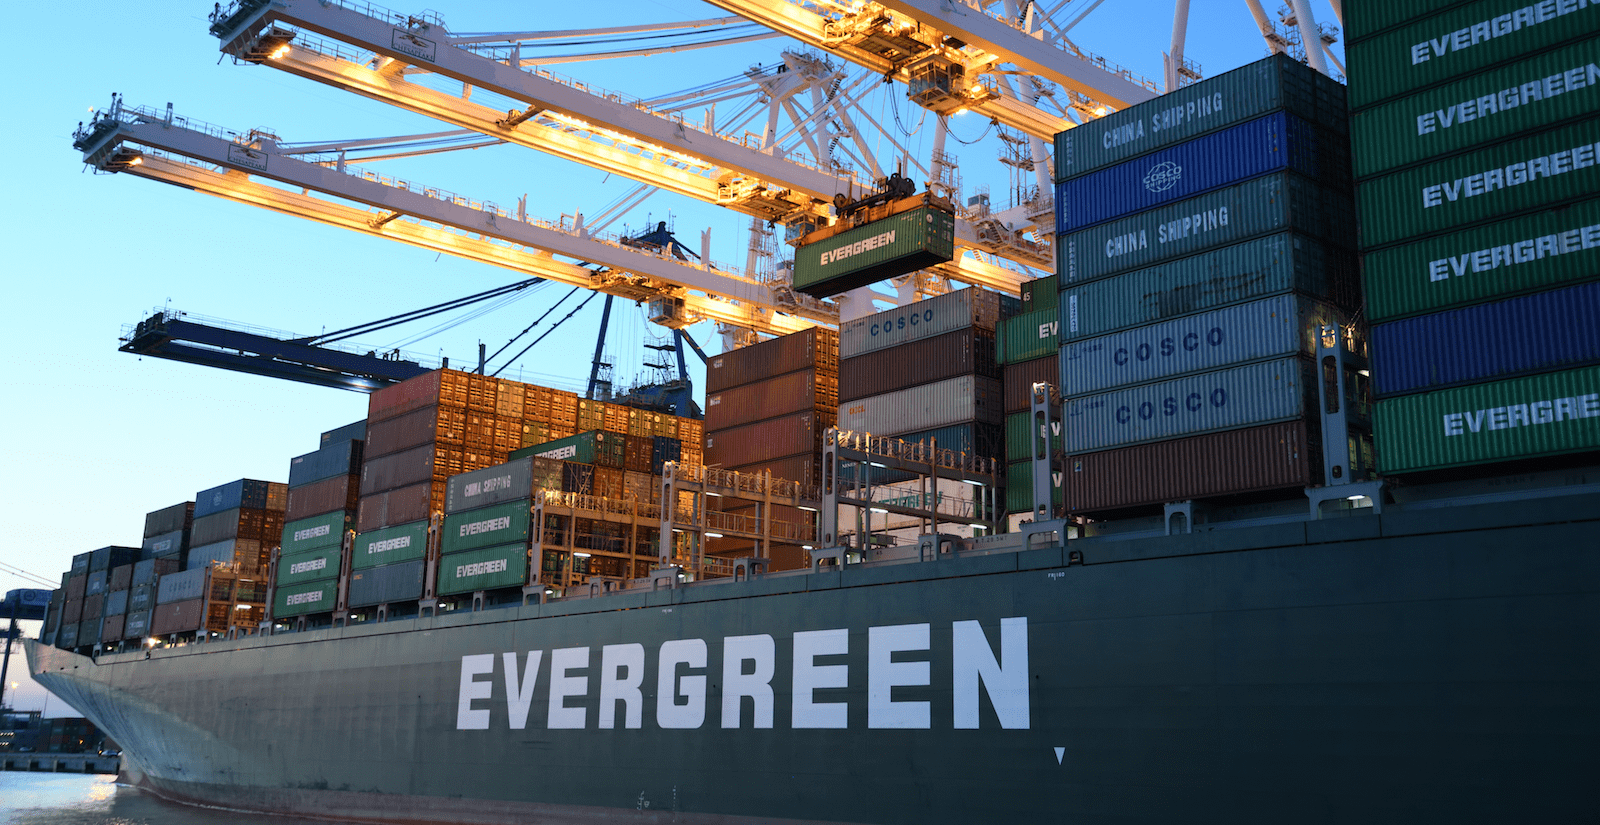 Power of alliances: How can ports deal with risks?